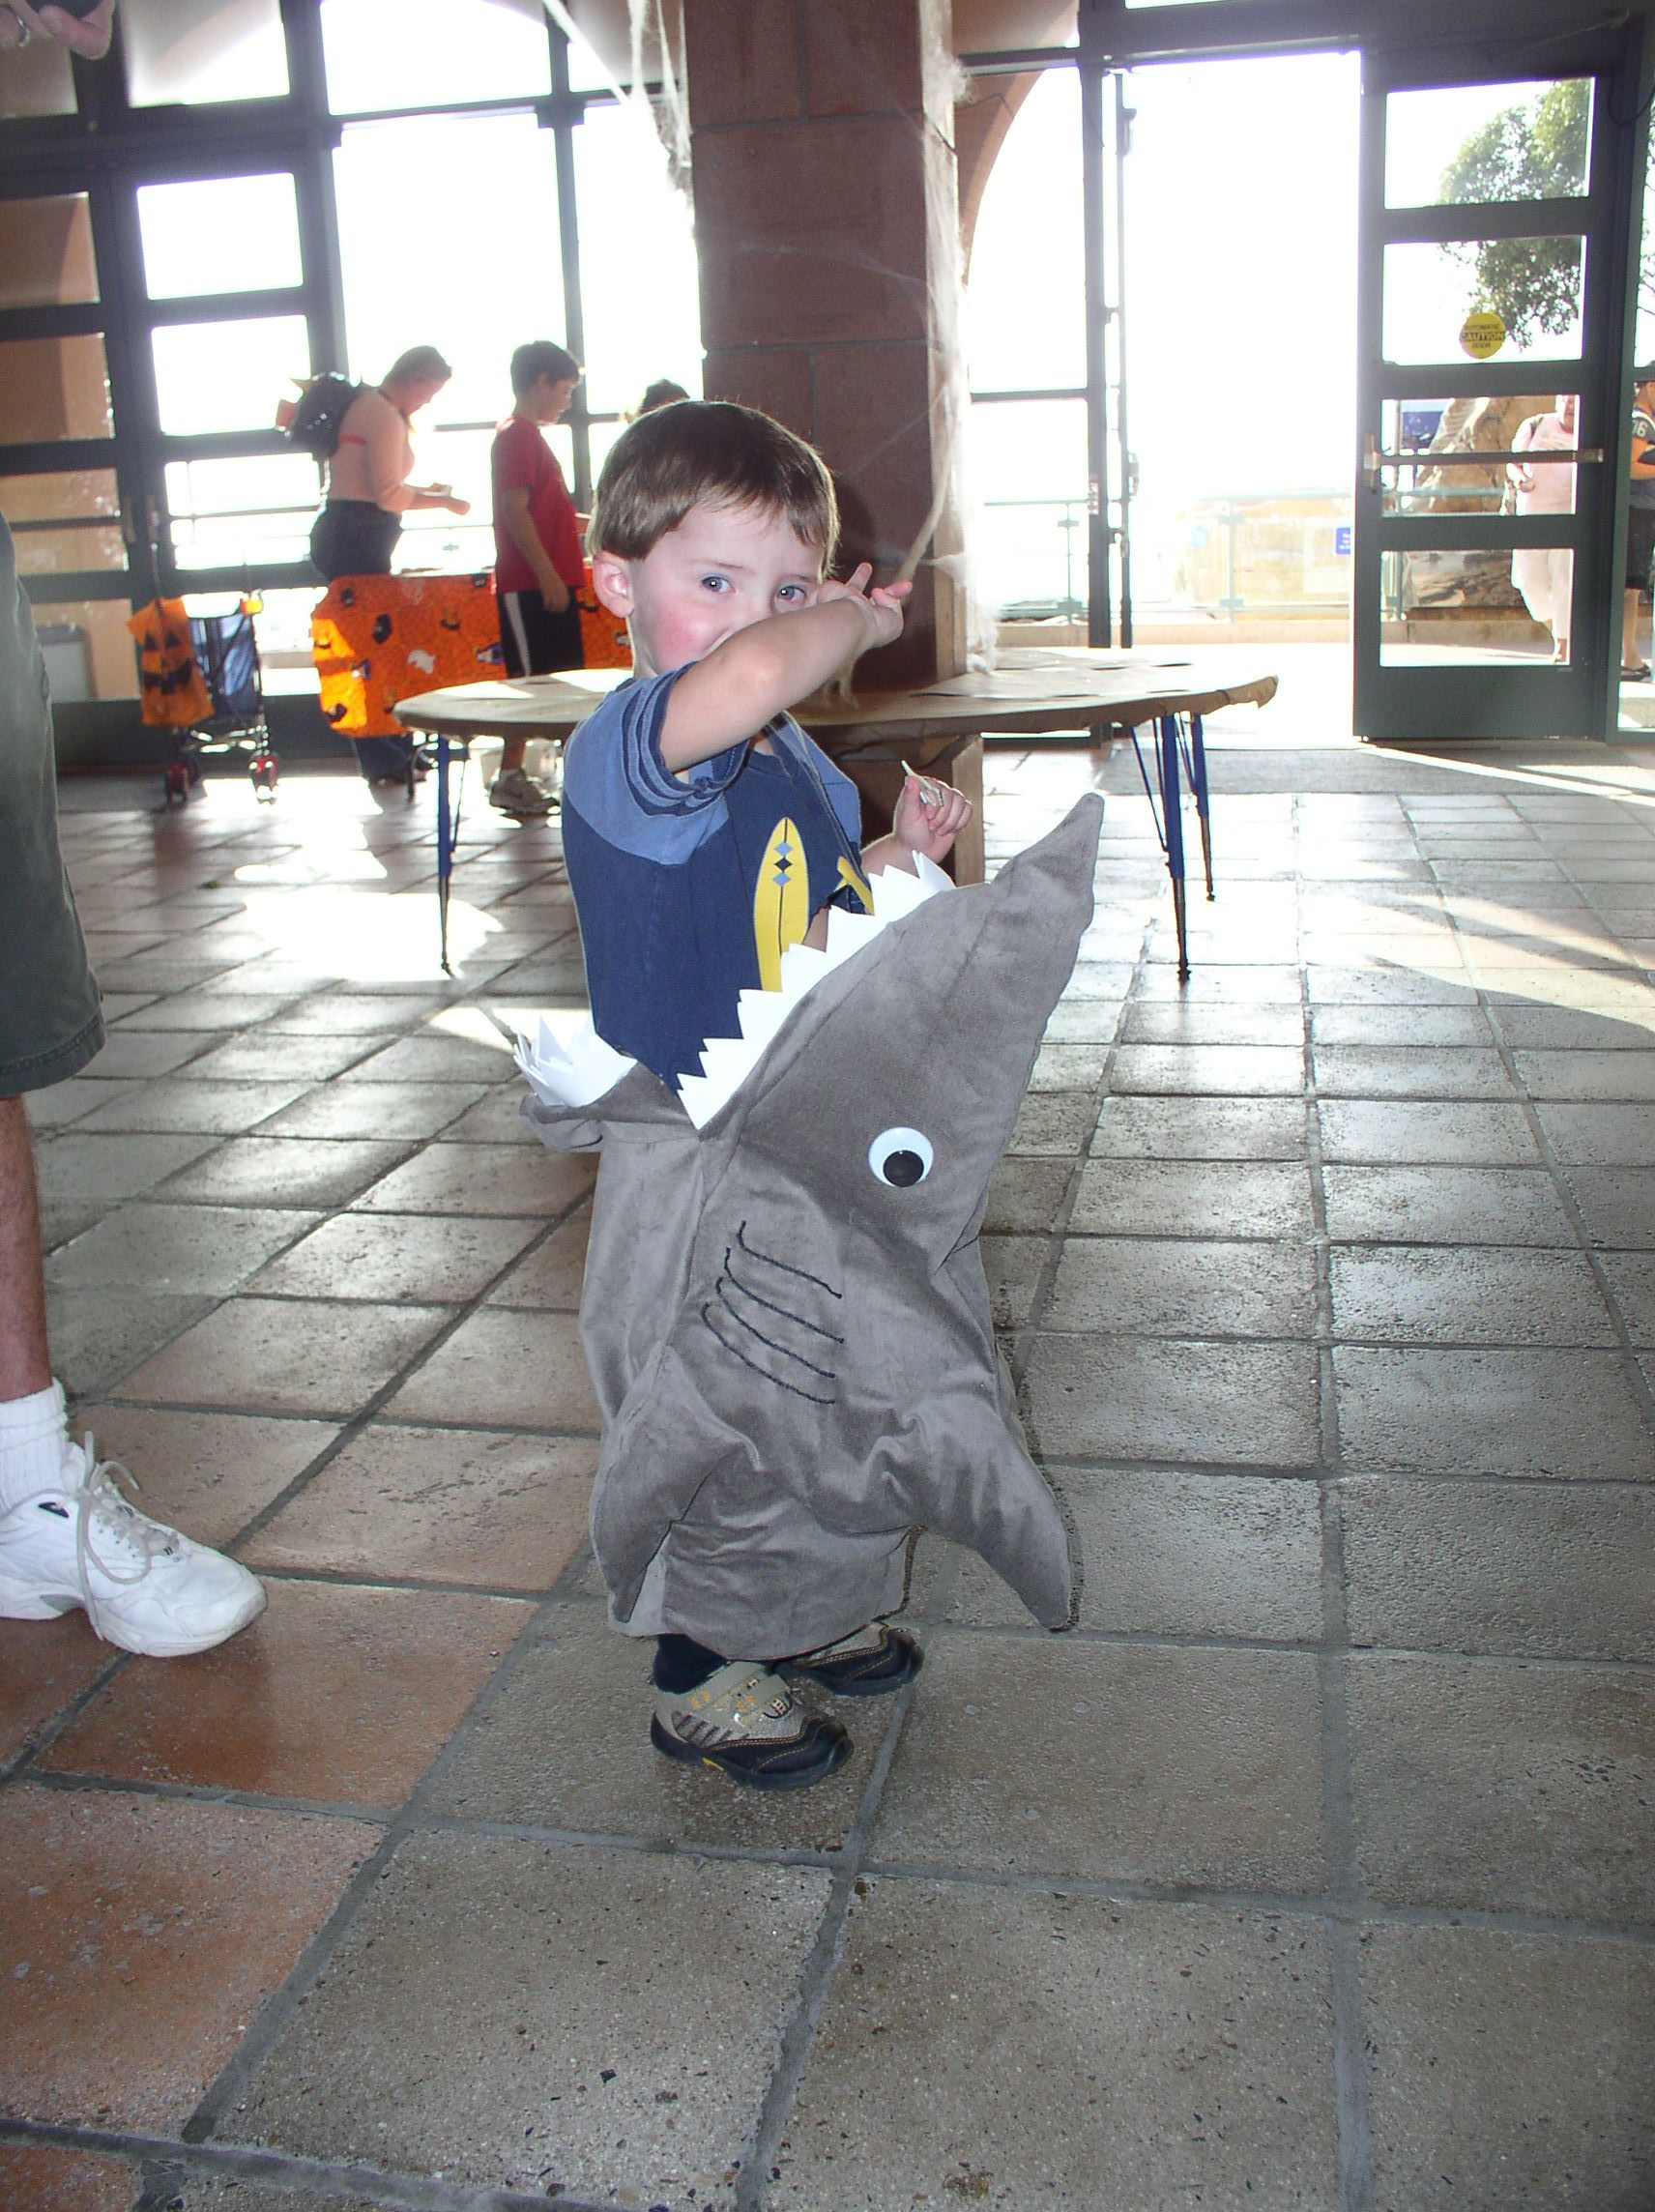 Simple shark i sewed onto my kids shirt he loved this costume